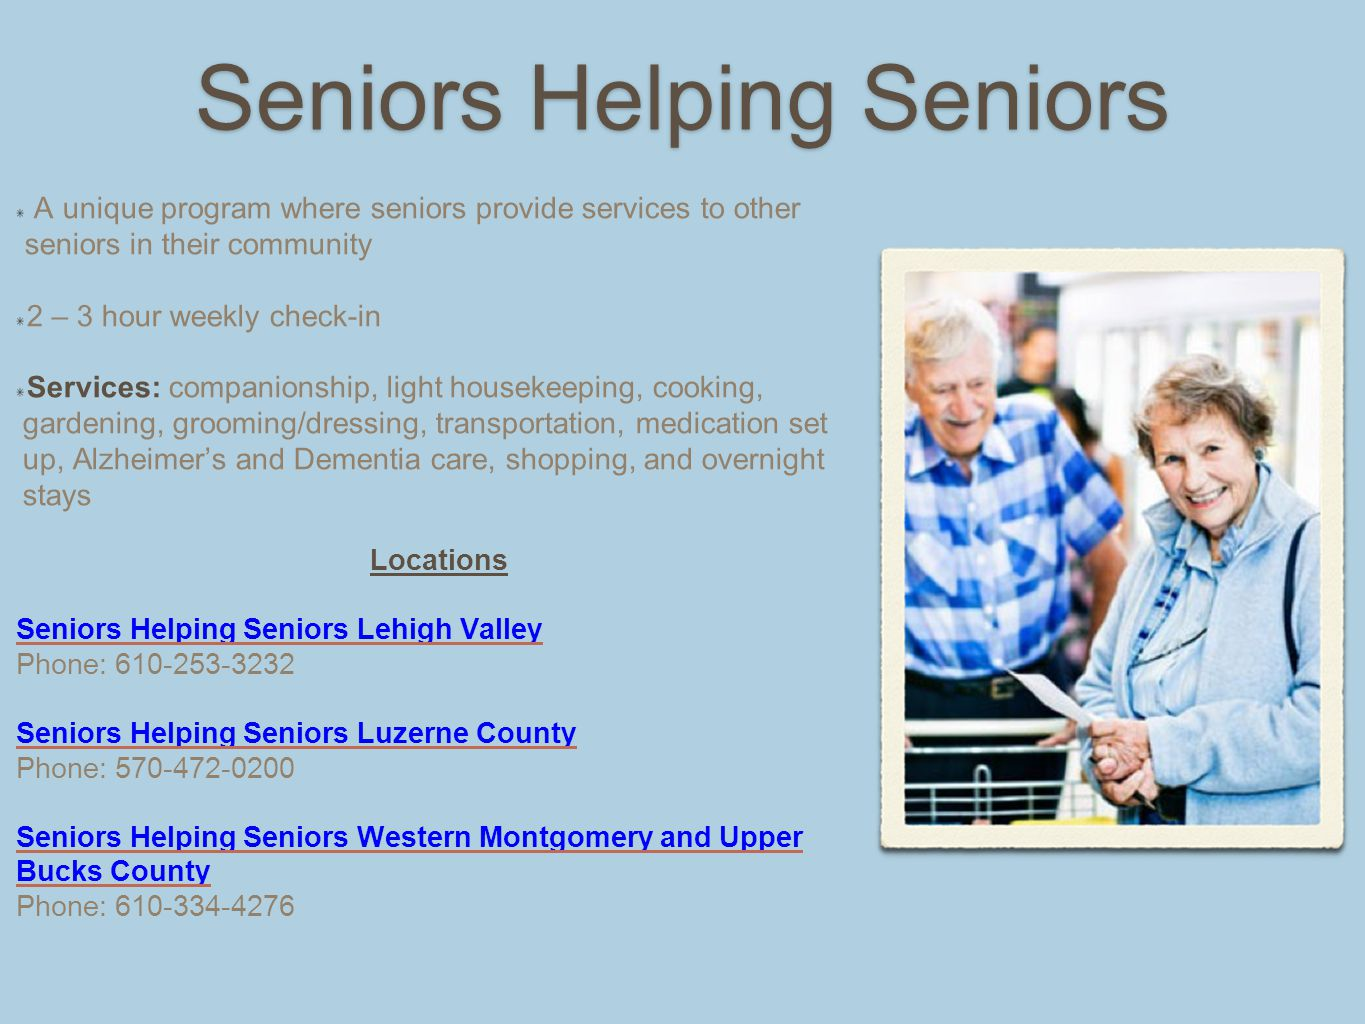 Seniors Helping Seniors A unique program where seniors provide services to other seniors in their community 2 – 3 hour weekly check-in Services: companionship, light housekeeping, cooking, gardening, grooming/dressing, transportation, medication set up, Alzheimer's and Dementia care, shopping, and overnight stays Locations Seniors Helping Seniors Lehigh Valley Phone: 610-253-3232 Seniors Helping Seniors Luzerne County Phone: 570-472-0200 Seniors Helping Seniors Western Montgomery and Upper Bucks County Phone: 610-334-4276